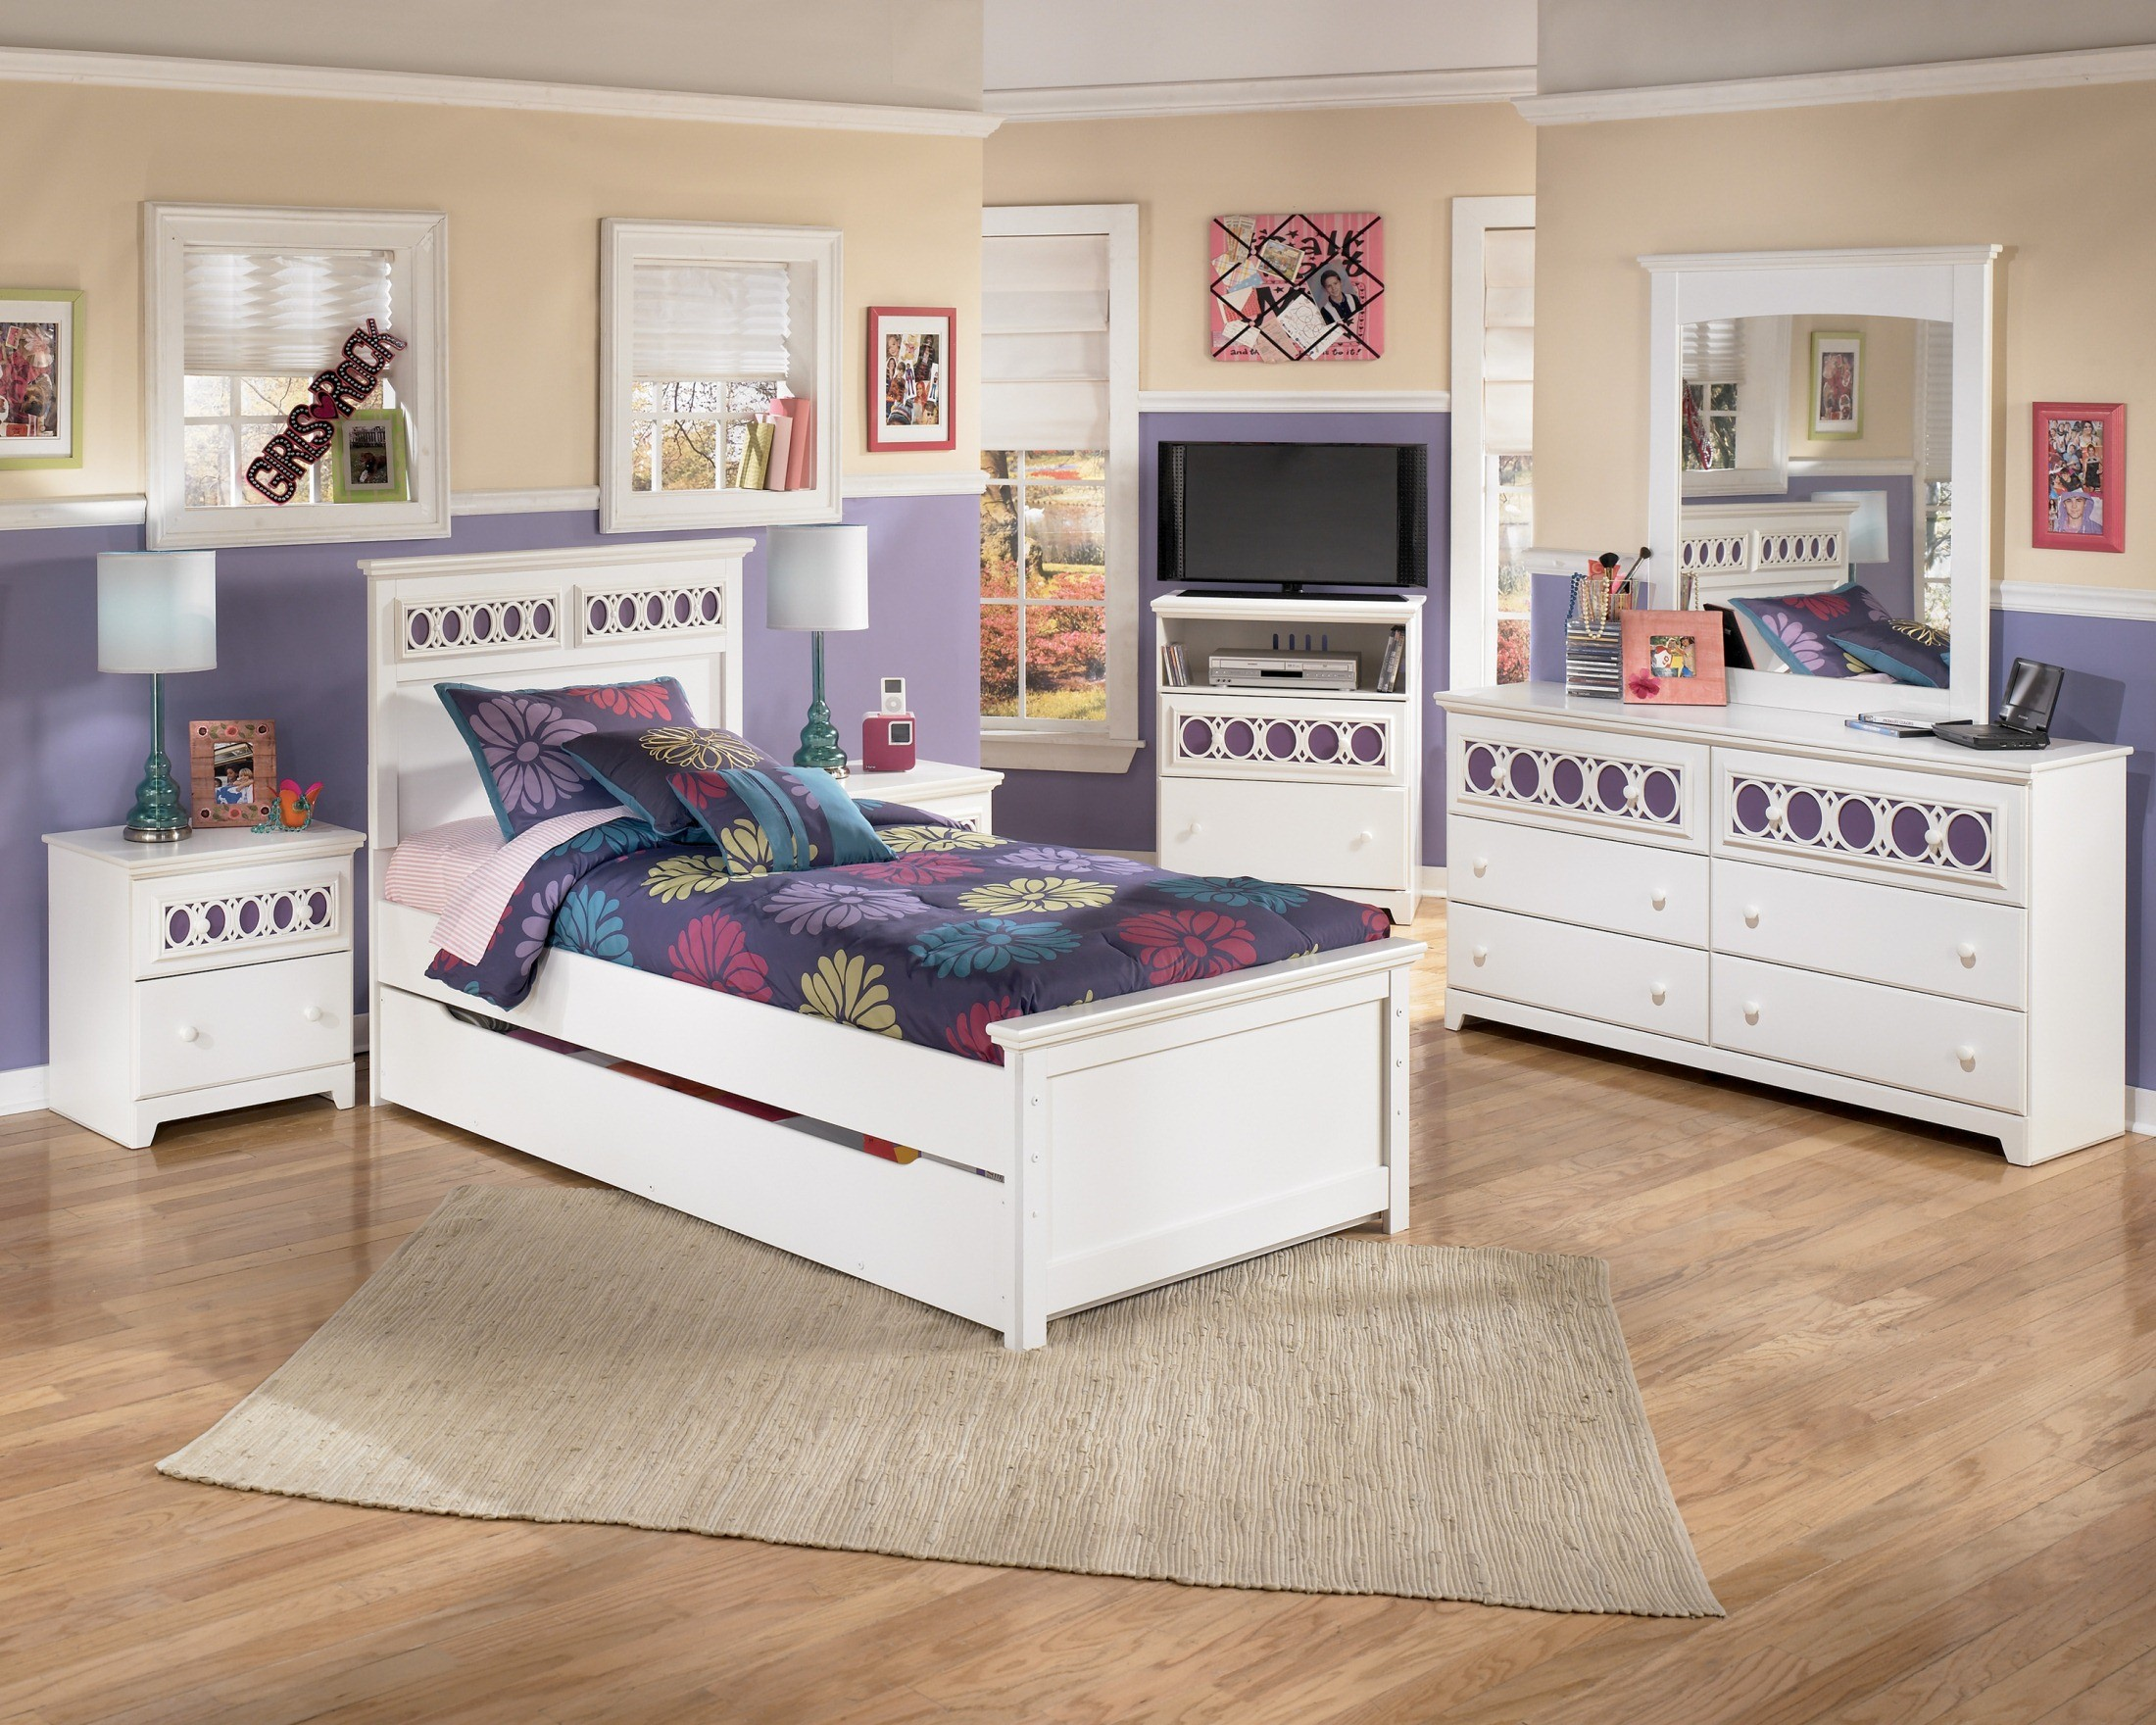 Ashley white bedroom furniture - Zayley Youth Panel Bedroom Set From Ashley B131535283 Coleman Furniture